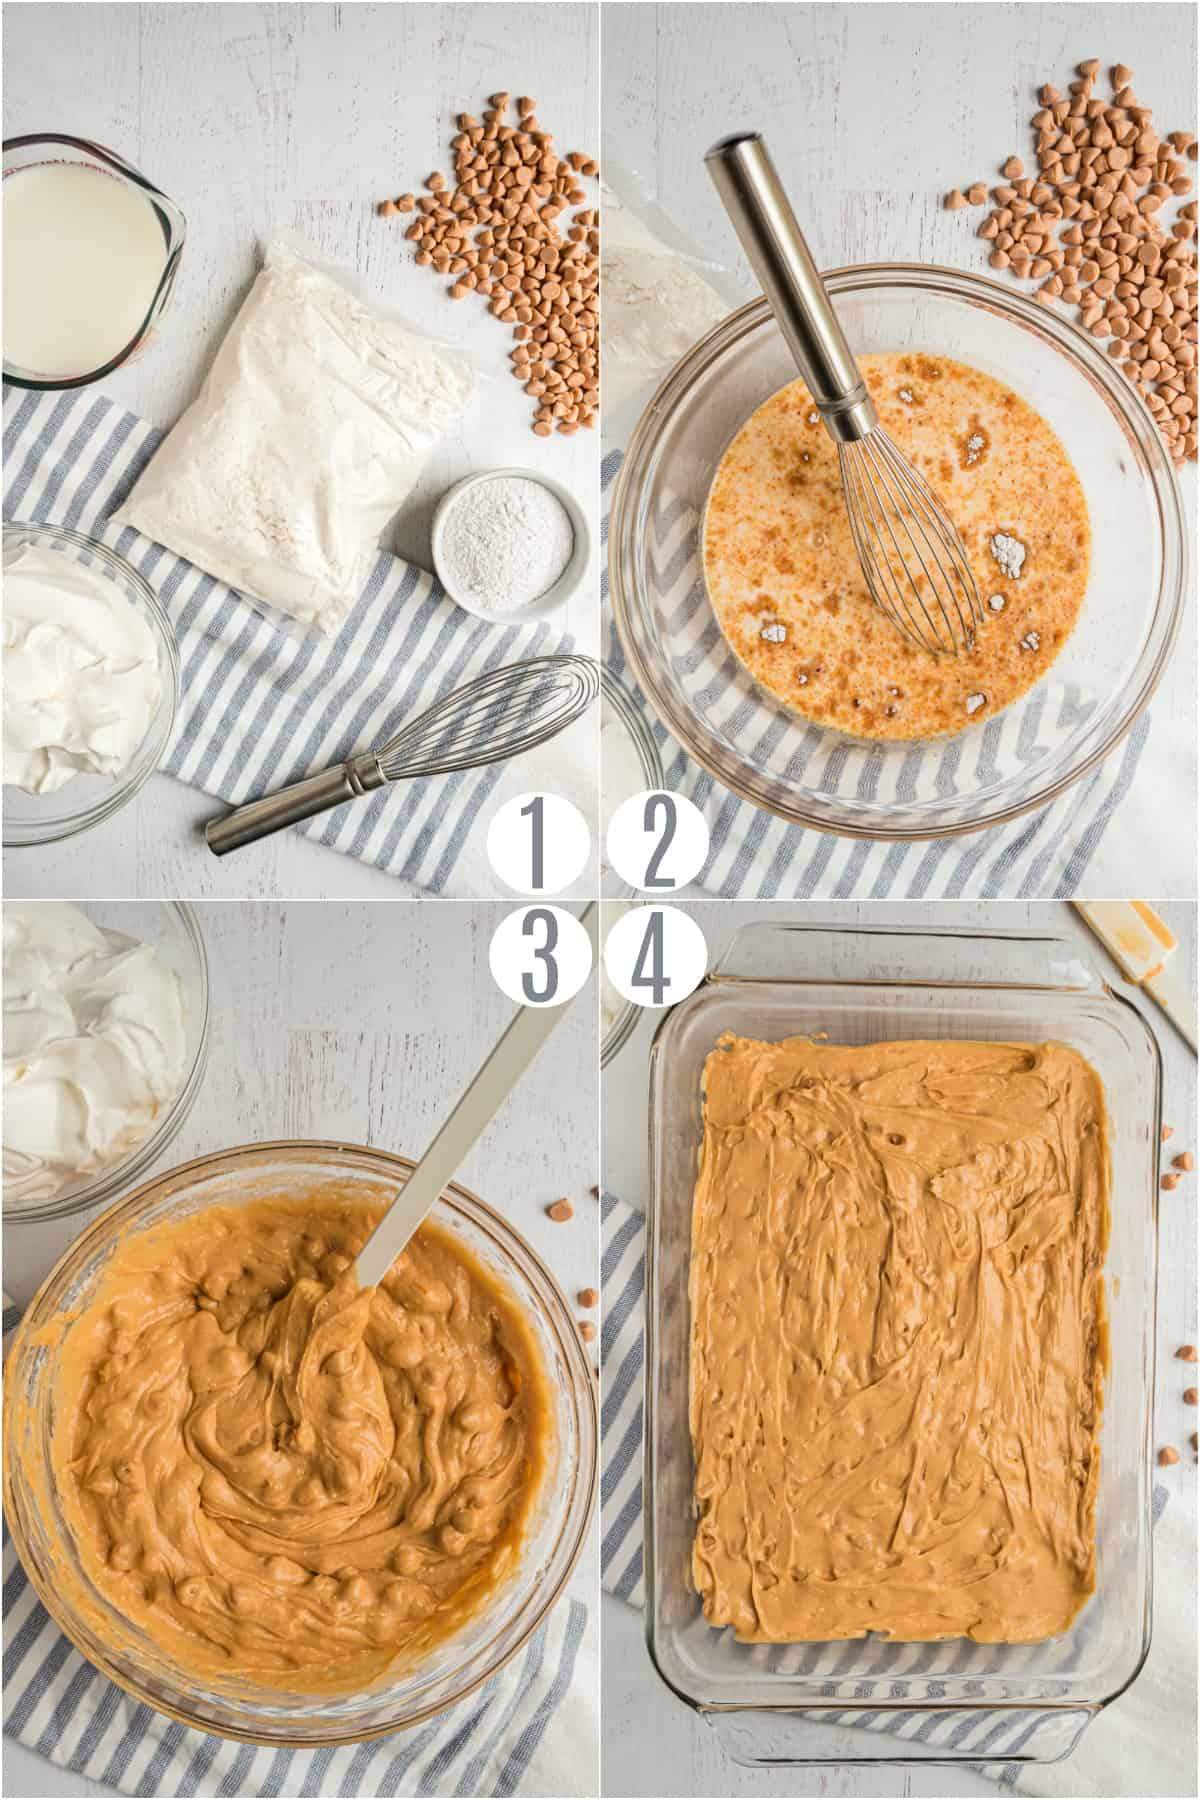 Step by step photos showing how to make a butterscotch pudding cake.